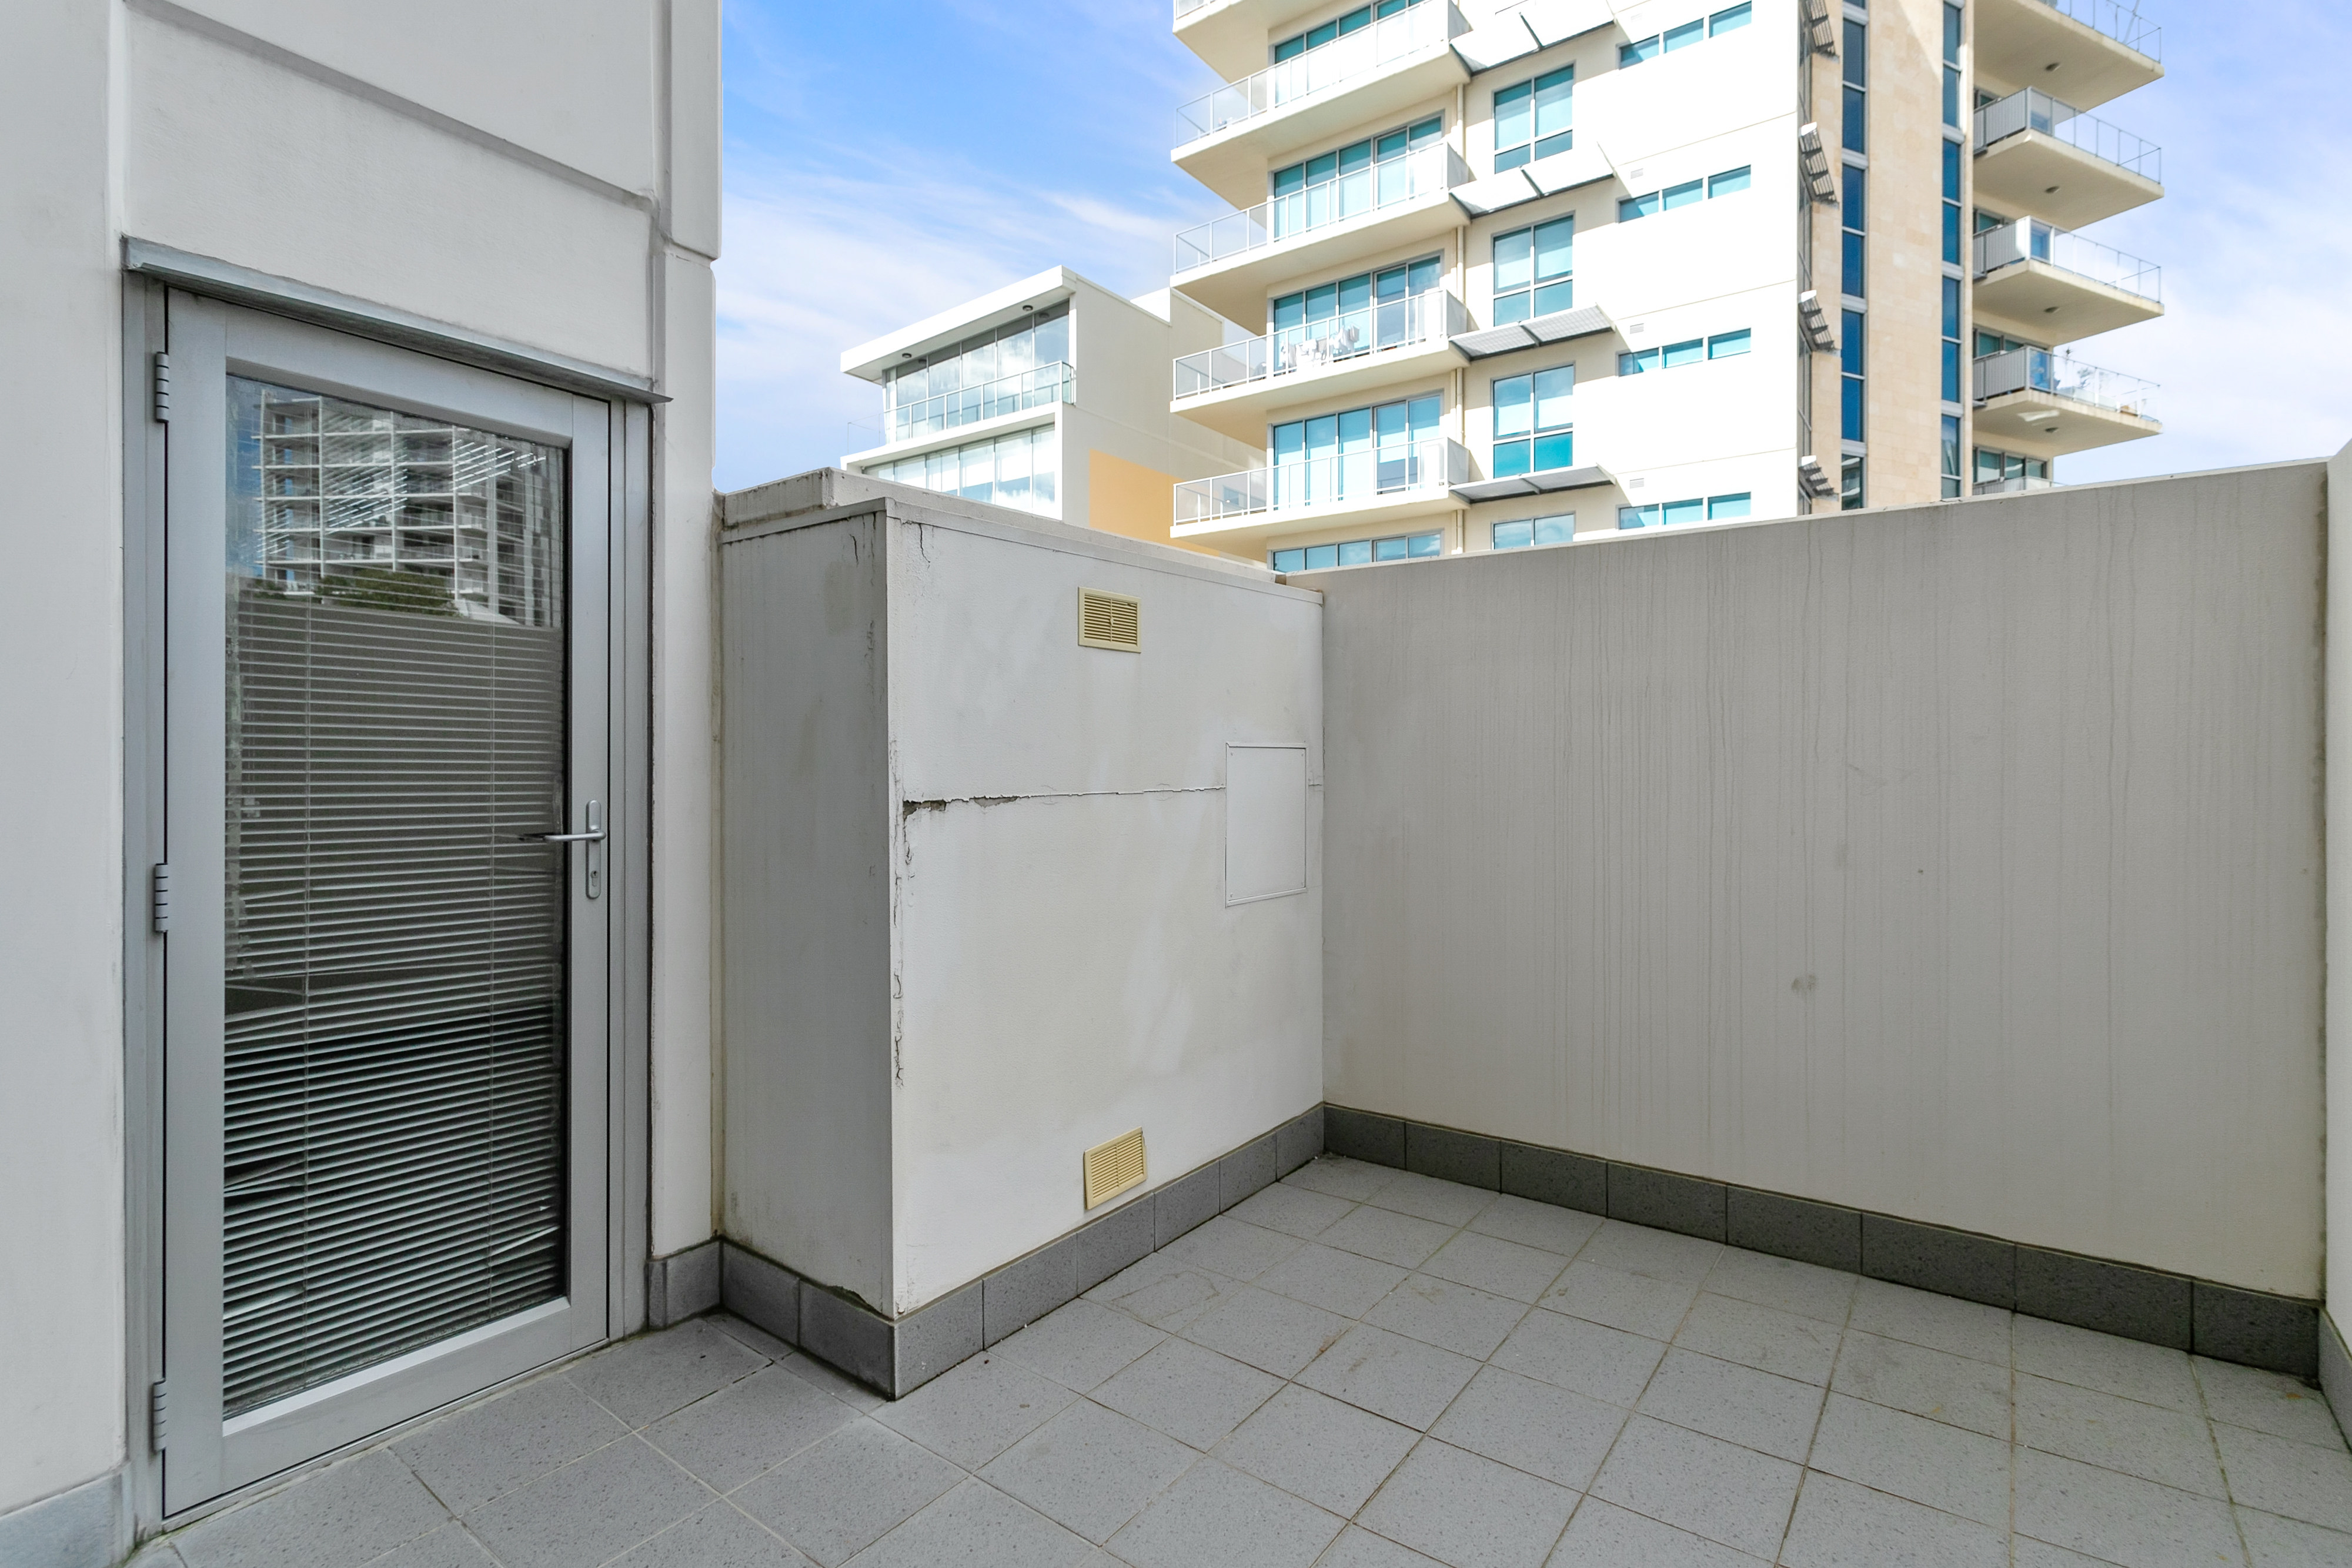 PRINT 1 8 Prowse St West Perth 35